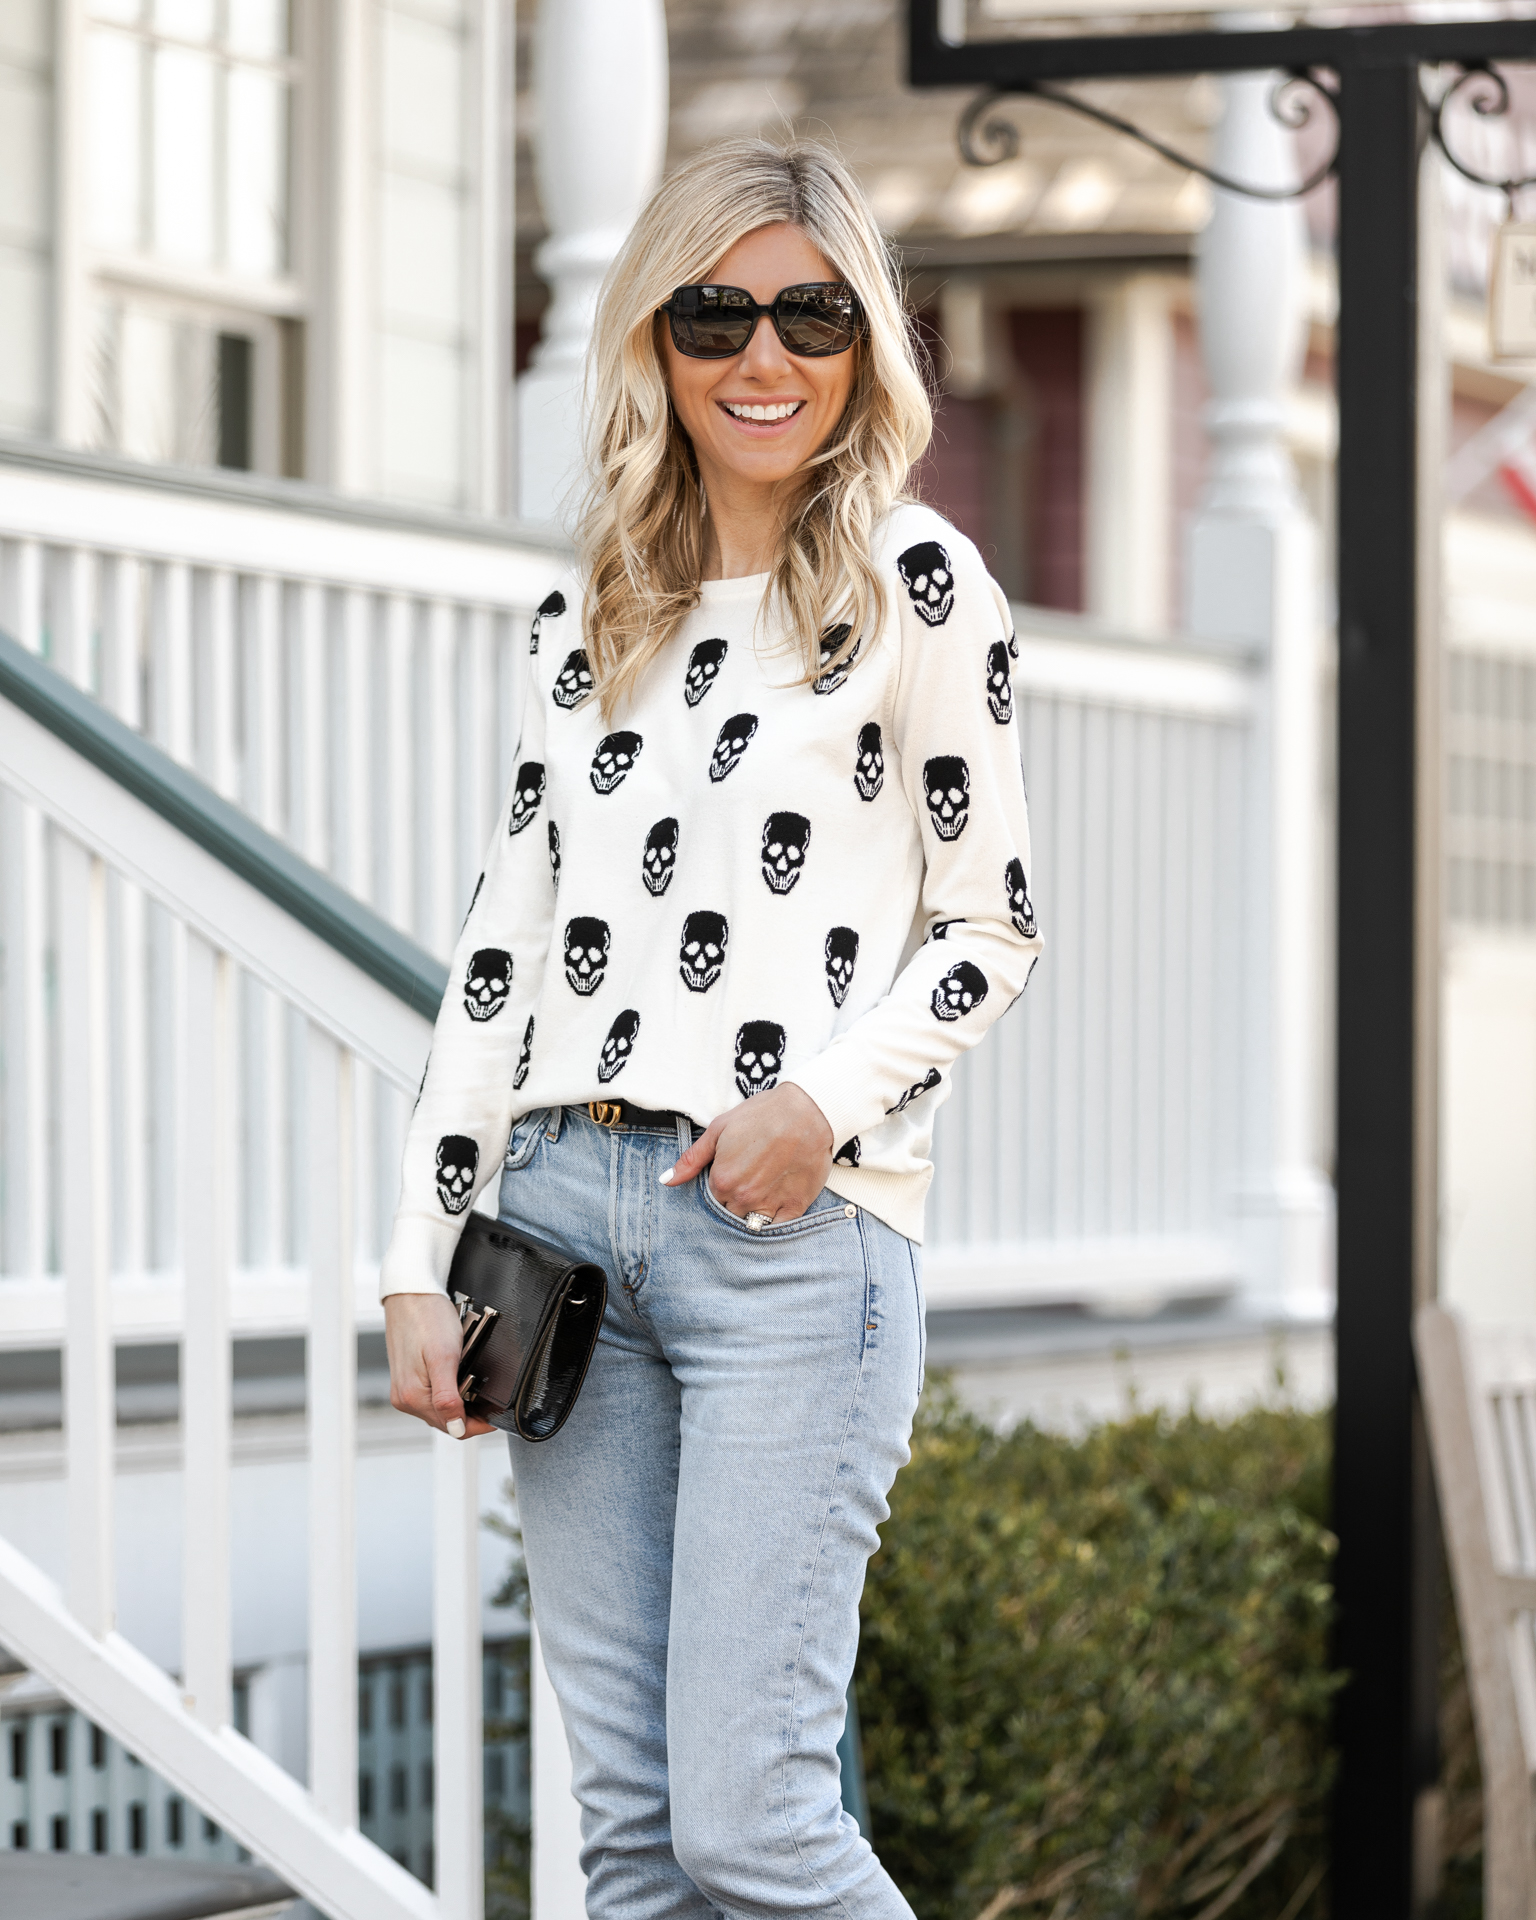 chic-skull-sweater-for-spring-the-glamorous-gal